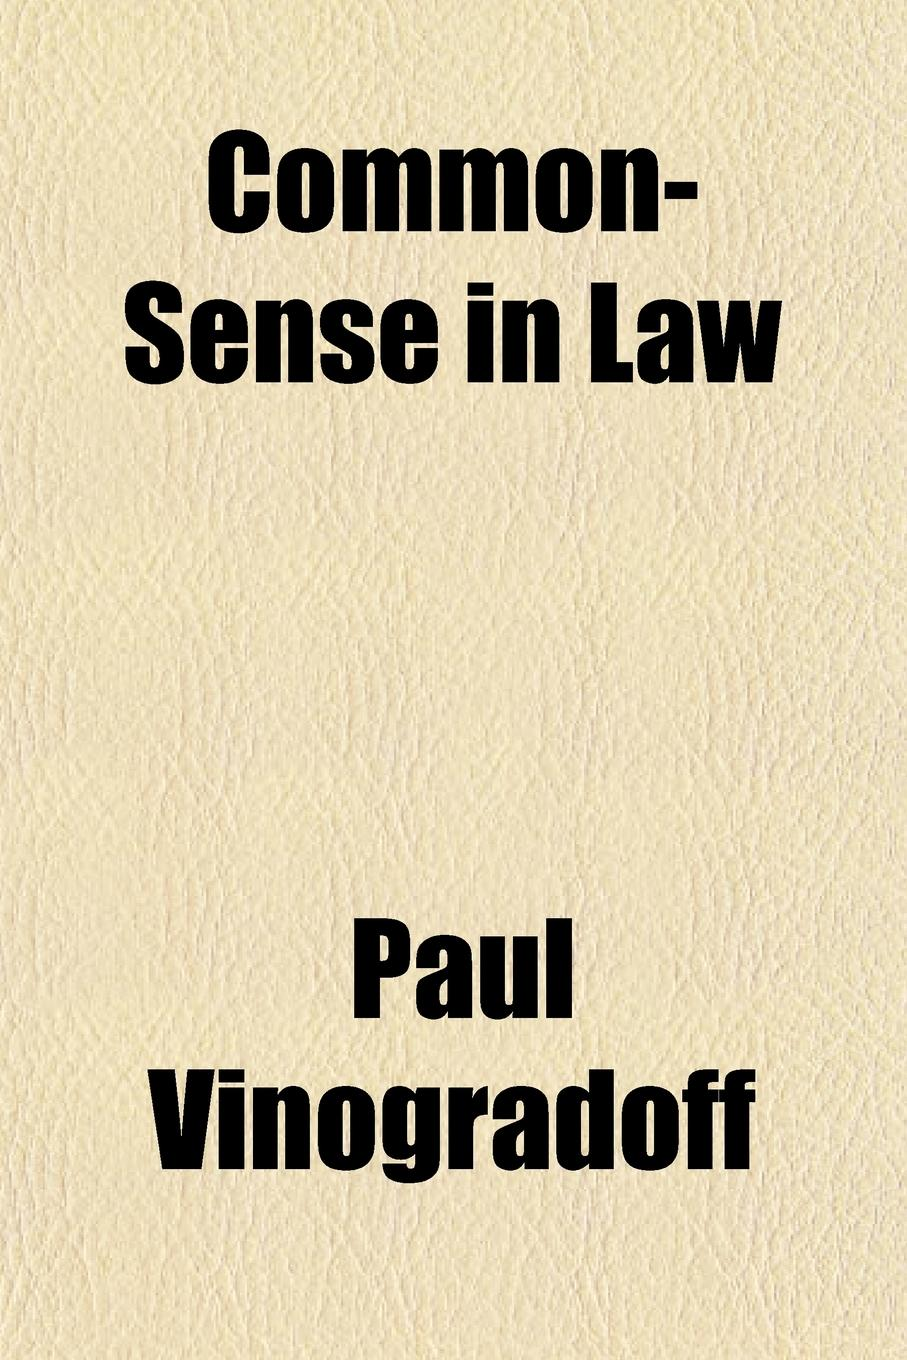 Paul Vinogradoff Common-Sense in Law free shipping kayipht cm400ha1 24h can directly buy or contact the seller